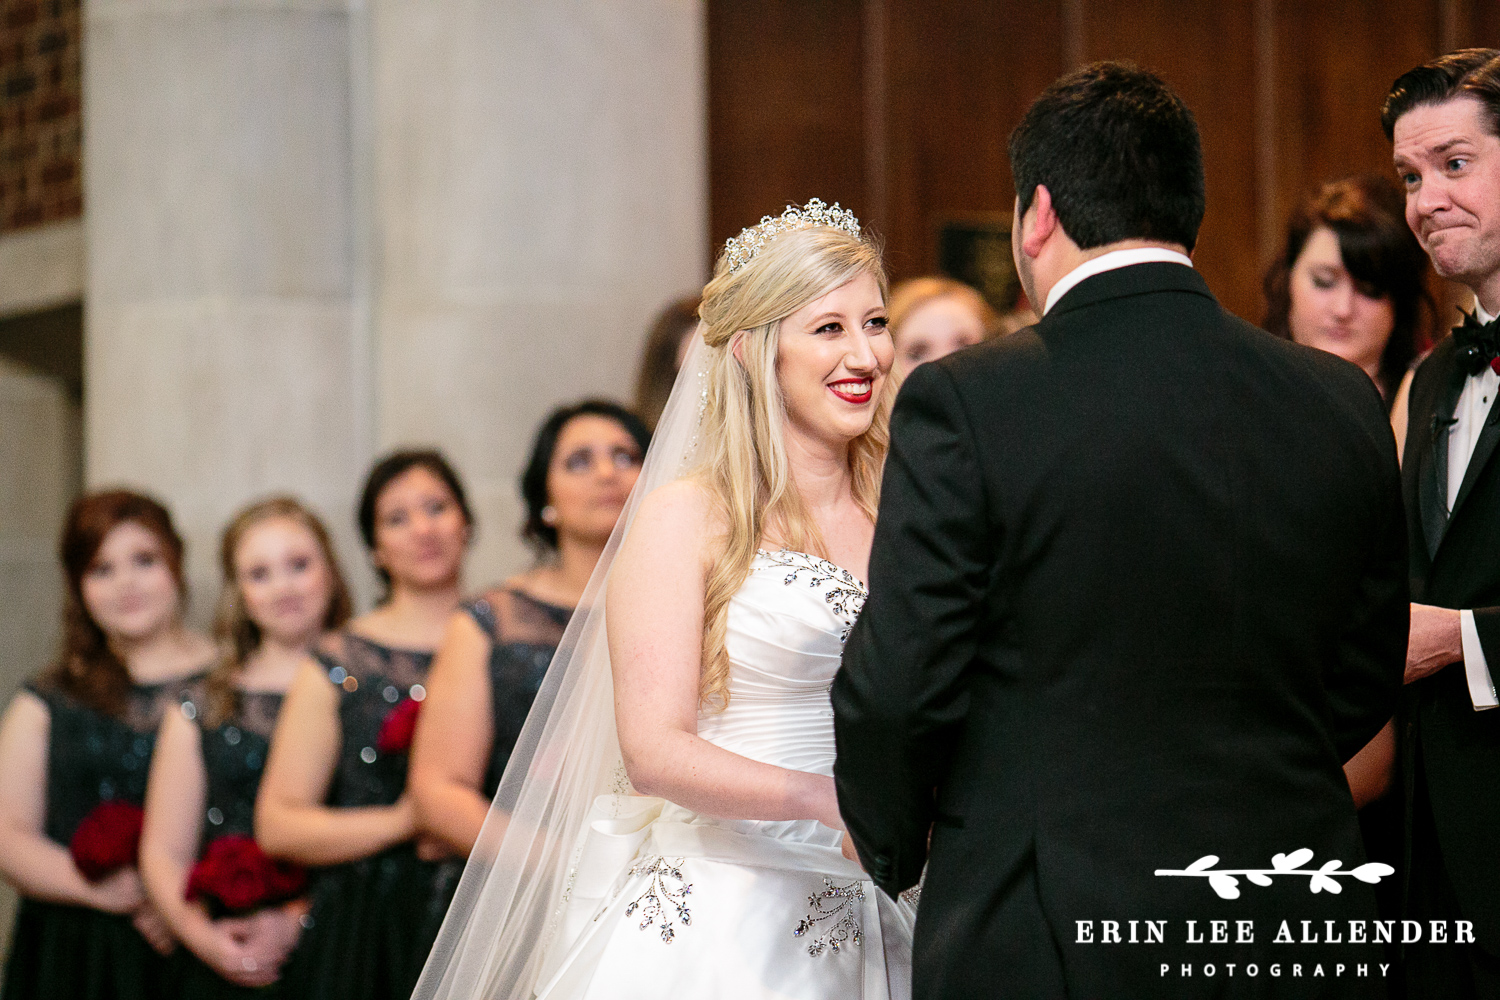 Bride_Looks_At_Groom_During_Ceremony